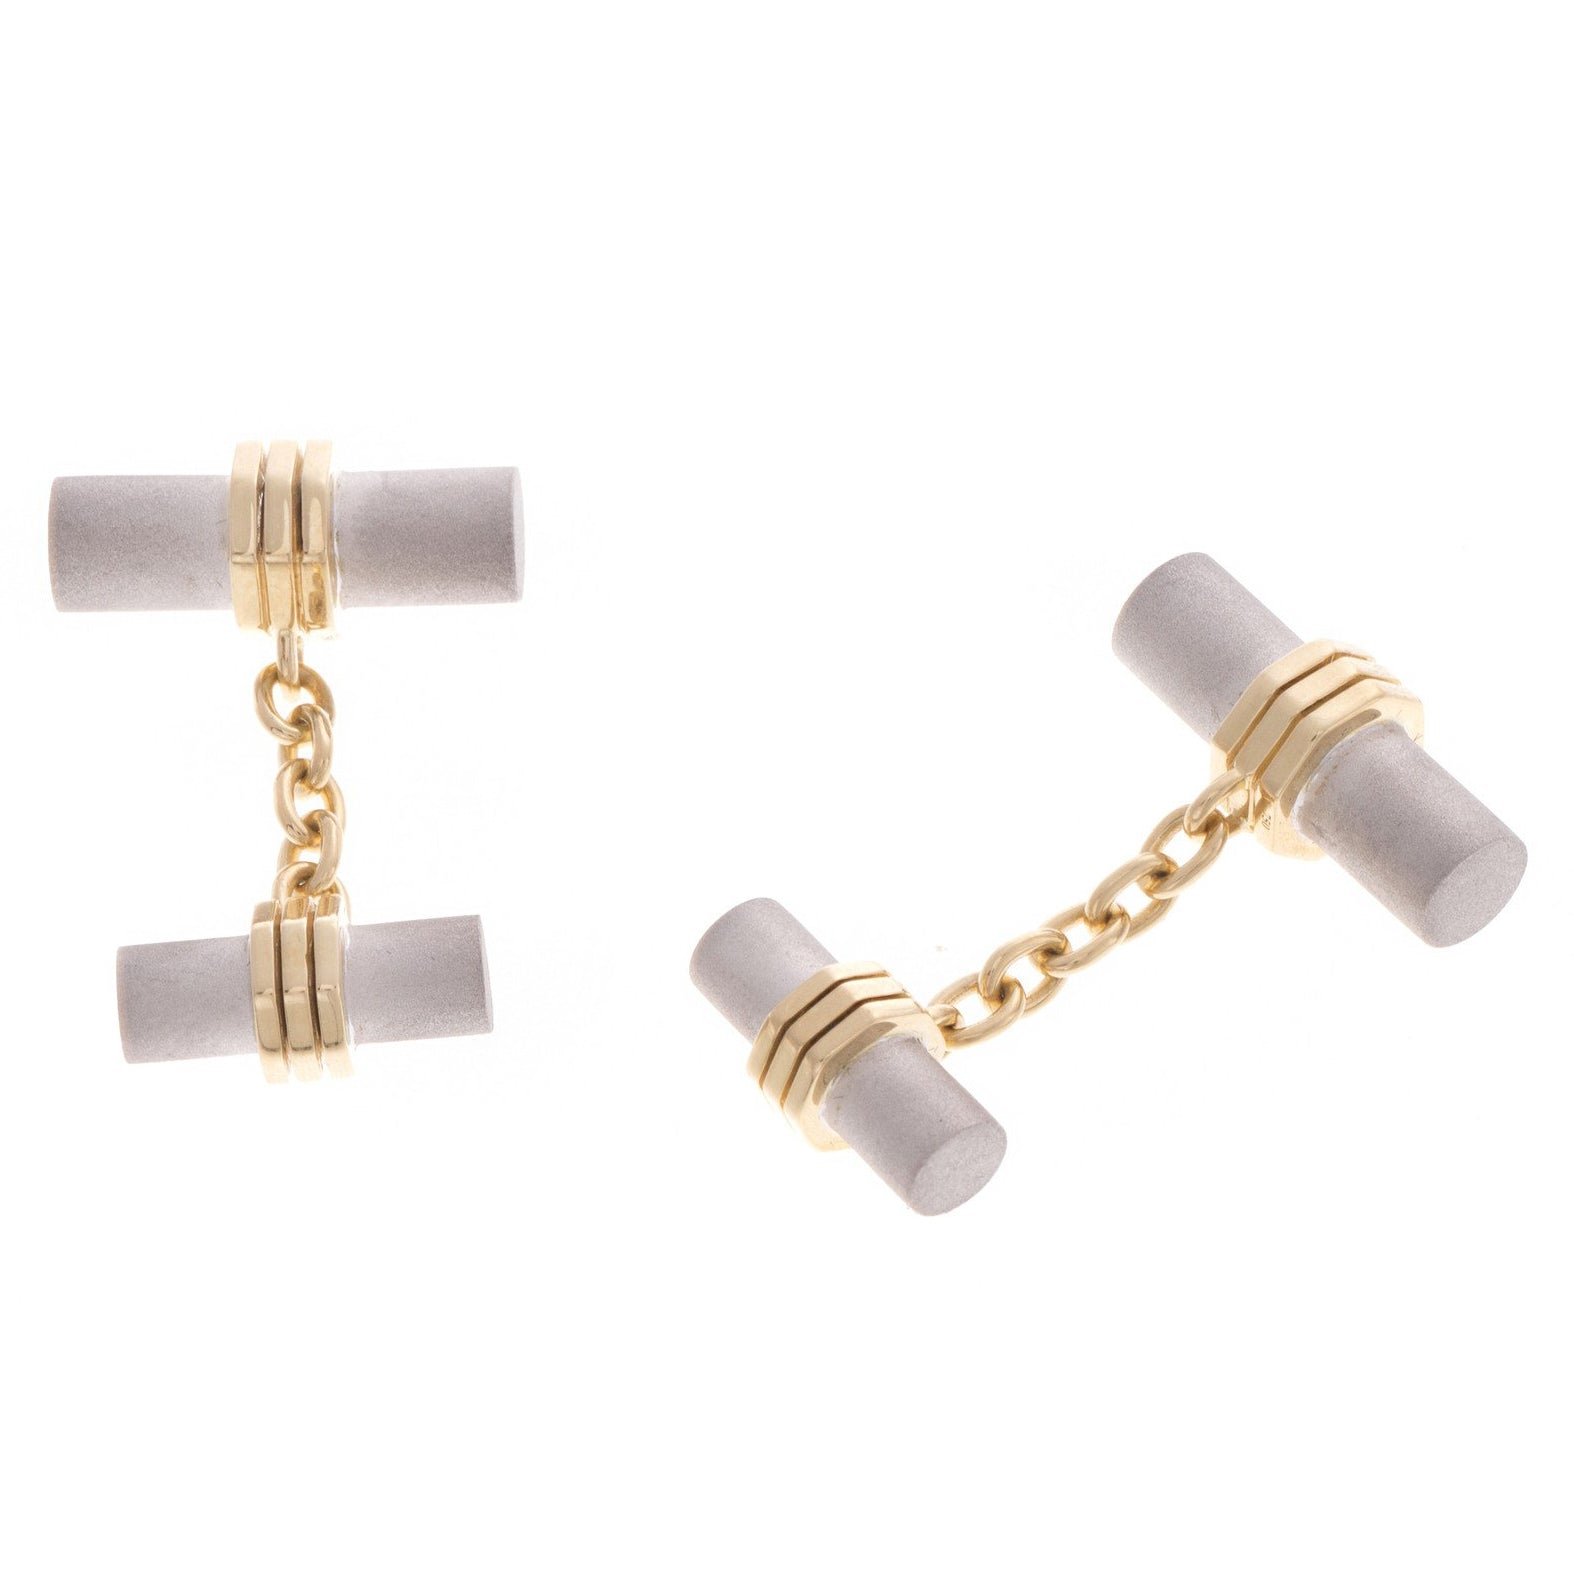 18ct White & Yellow Gold Men's Cufflinks, Minar Jewellers - 5